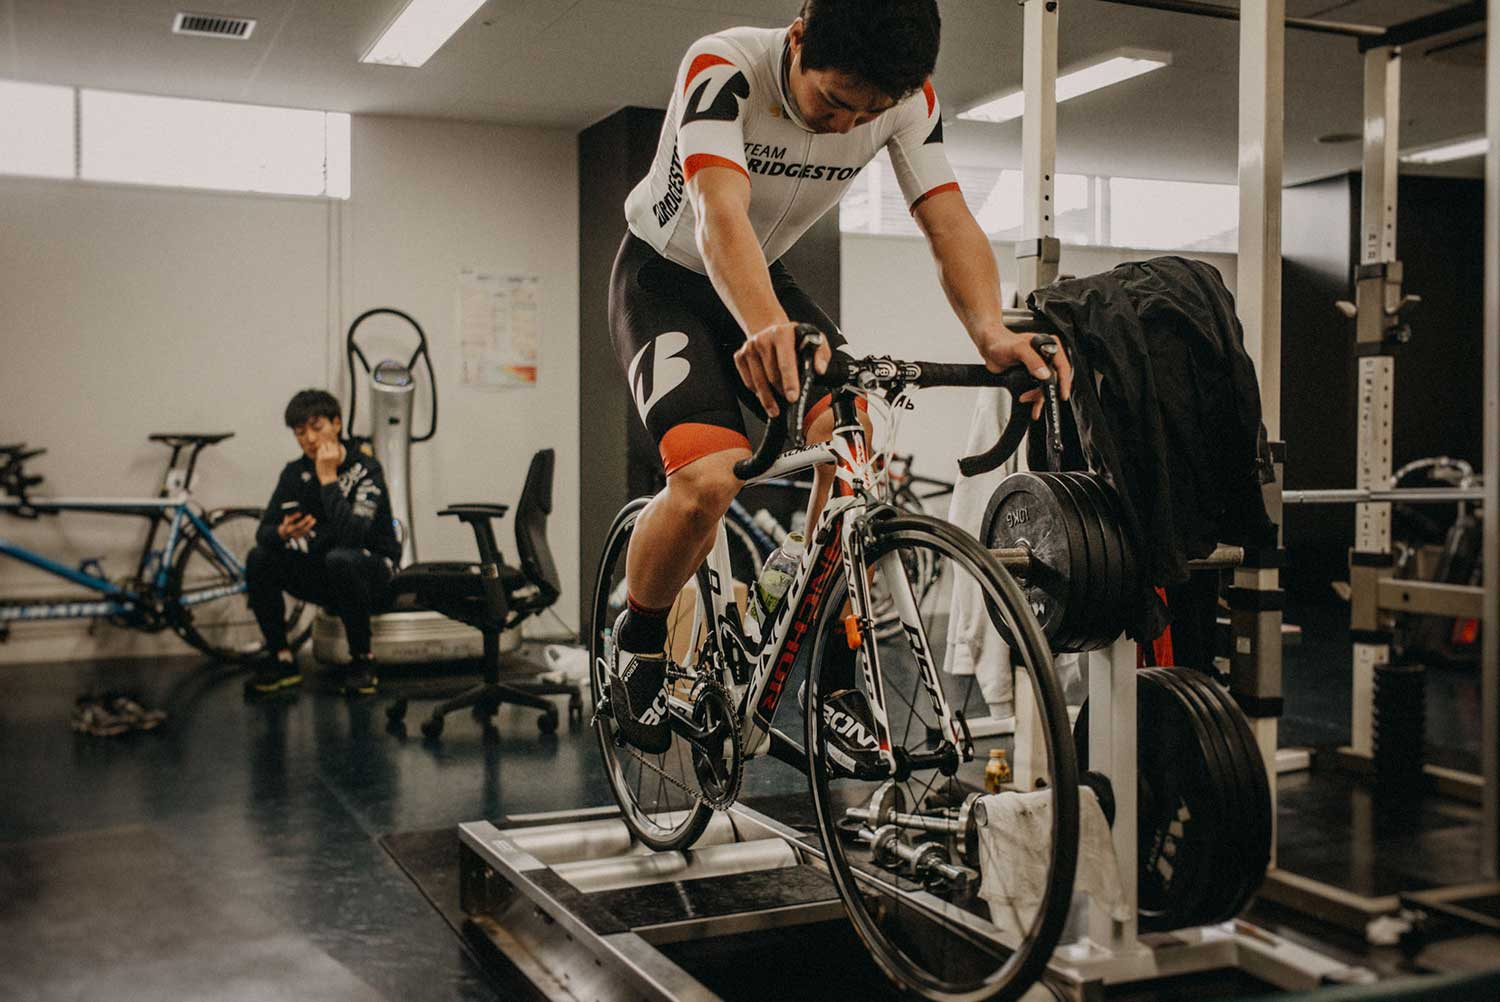 Japan Olympic track cyclist trains on static rollers to test cycling foot orthotics at Izu Velodrome, Japan